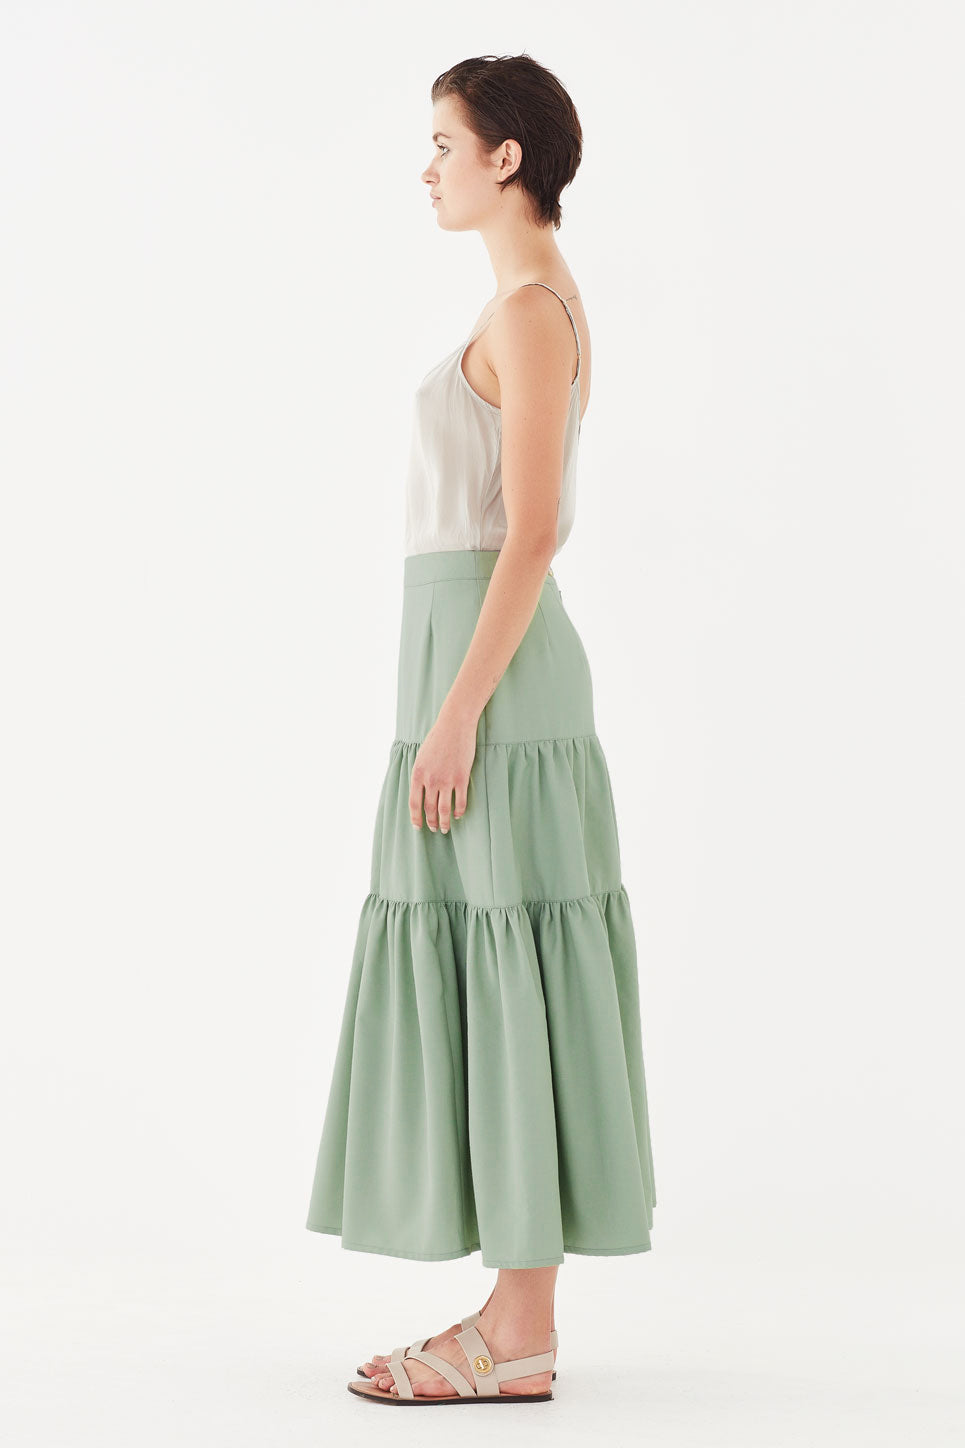 The Iris Skirt in Pistachio